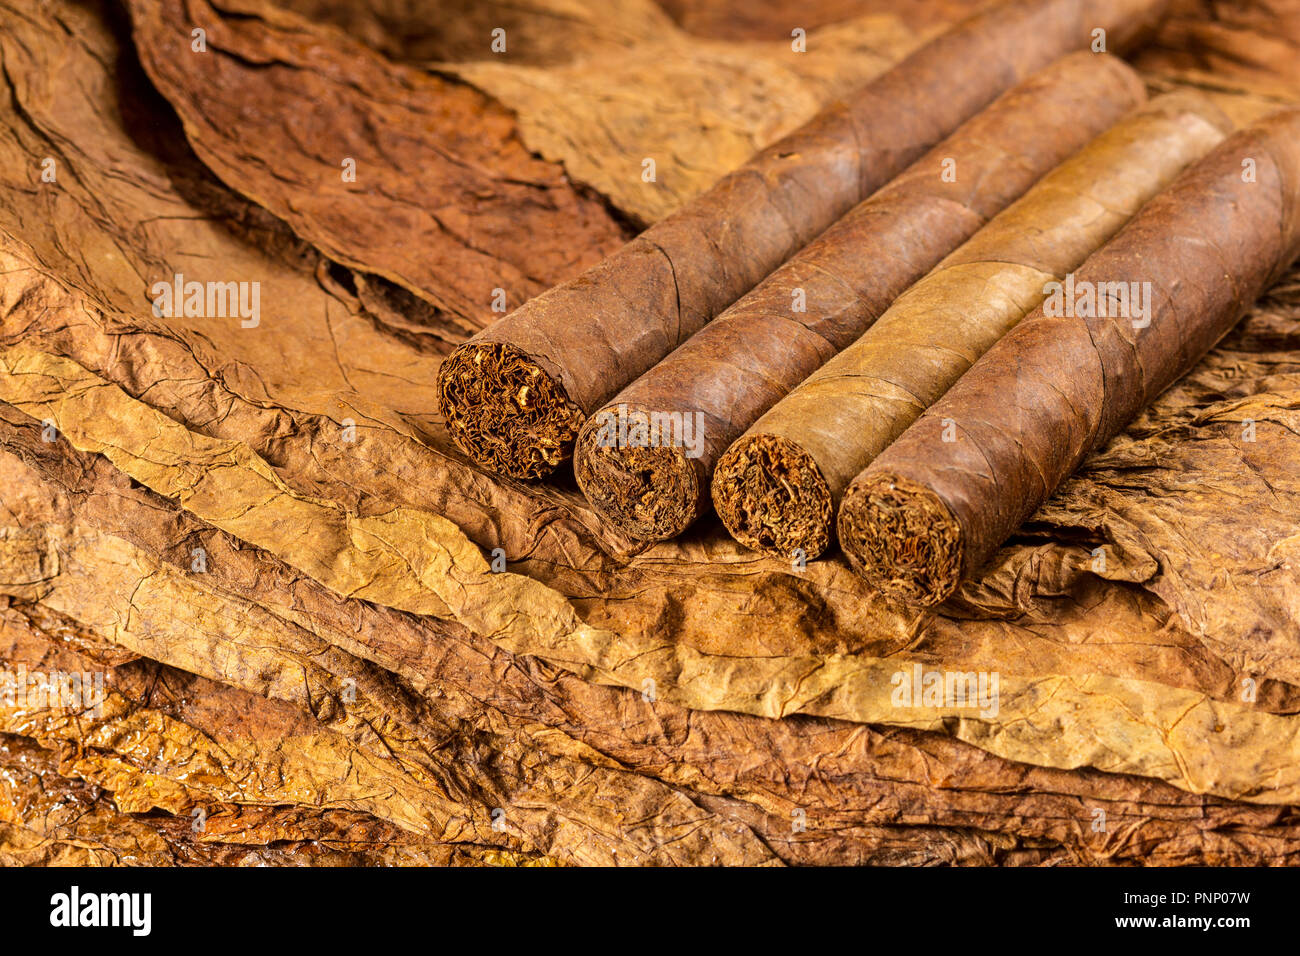 group of cigars on tobacco leaves - Stock Image